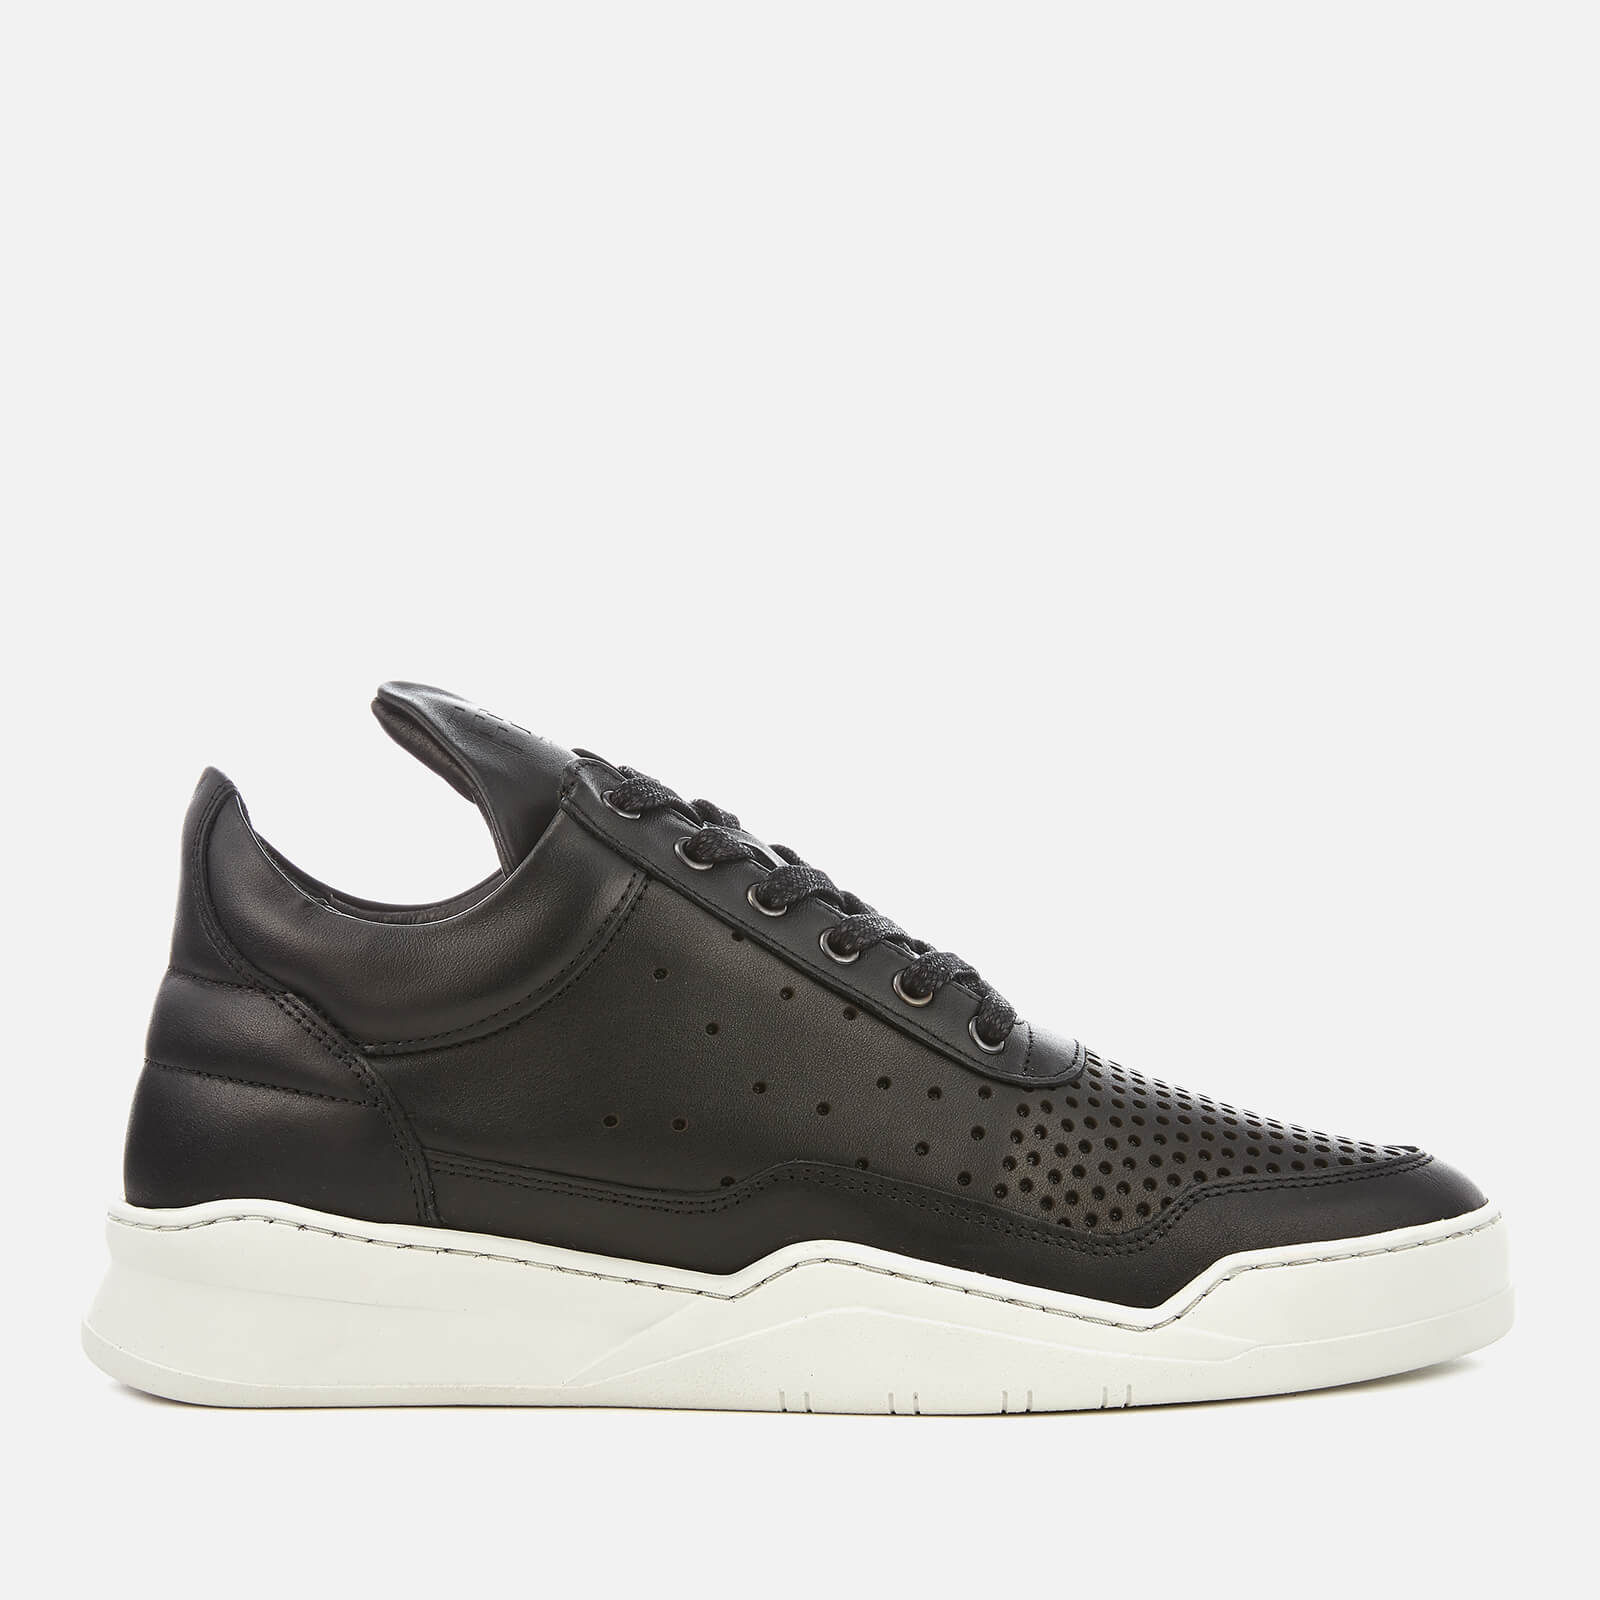 cdbc88b43eb1 Filling Pieces Men s Gradient Perforated Leather Low Top Trainers -  Black White - Free UK Delivery over £50